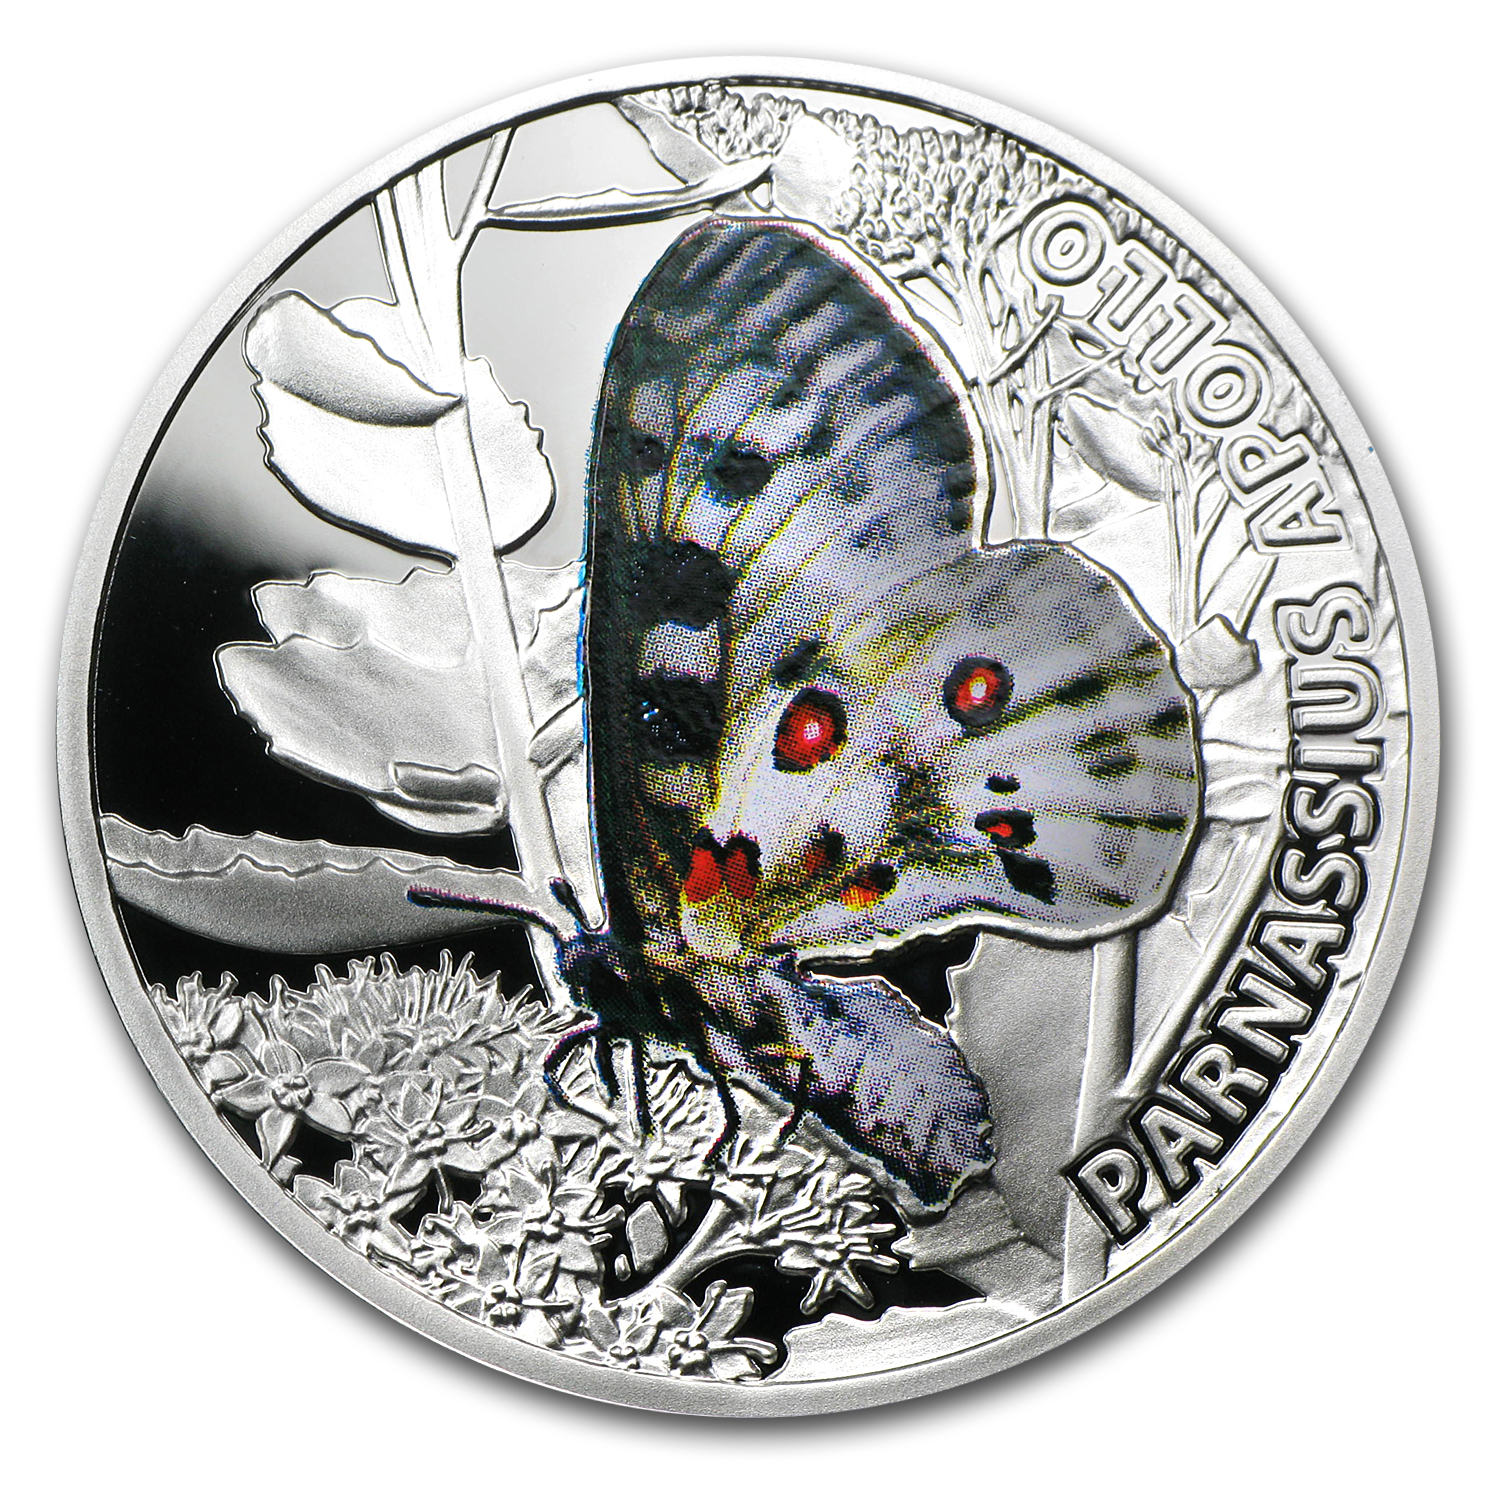 2010 Niue Proof Silver $1 Butterflies Apollo